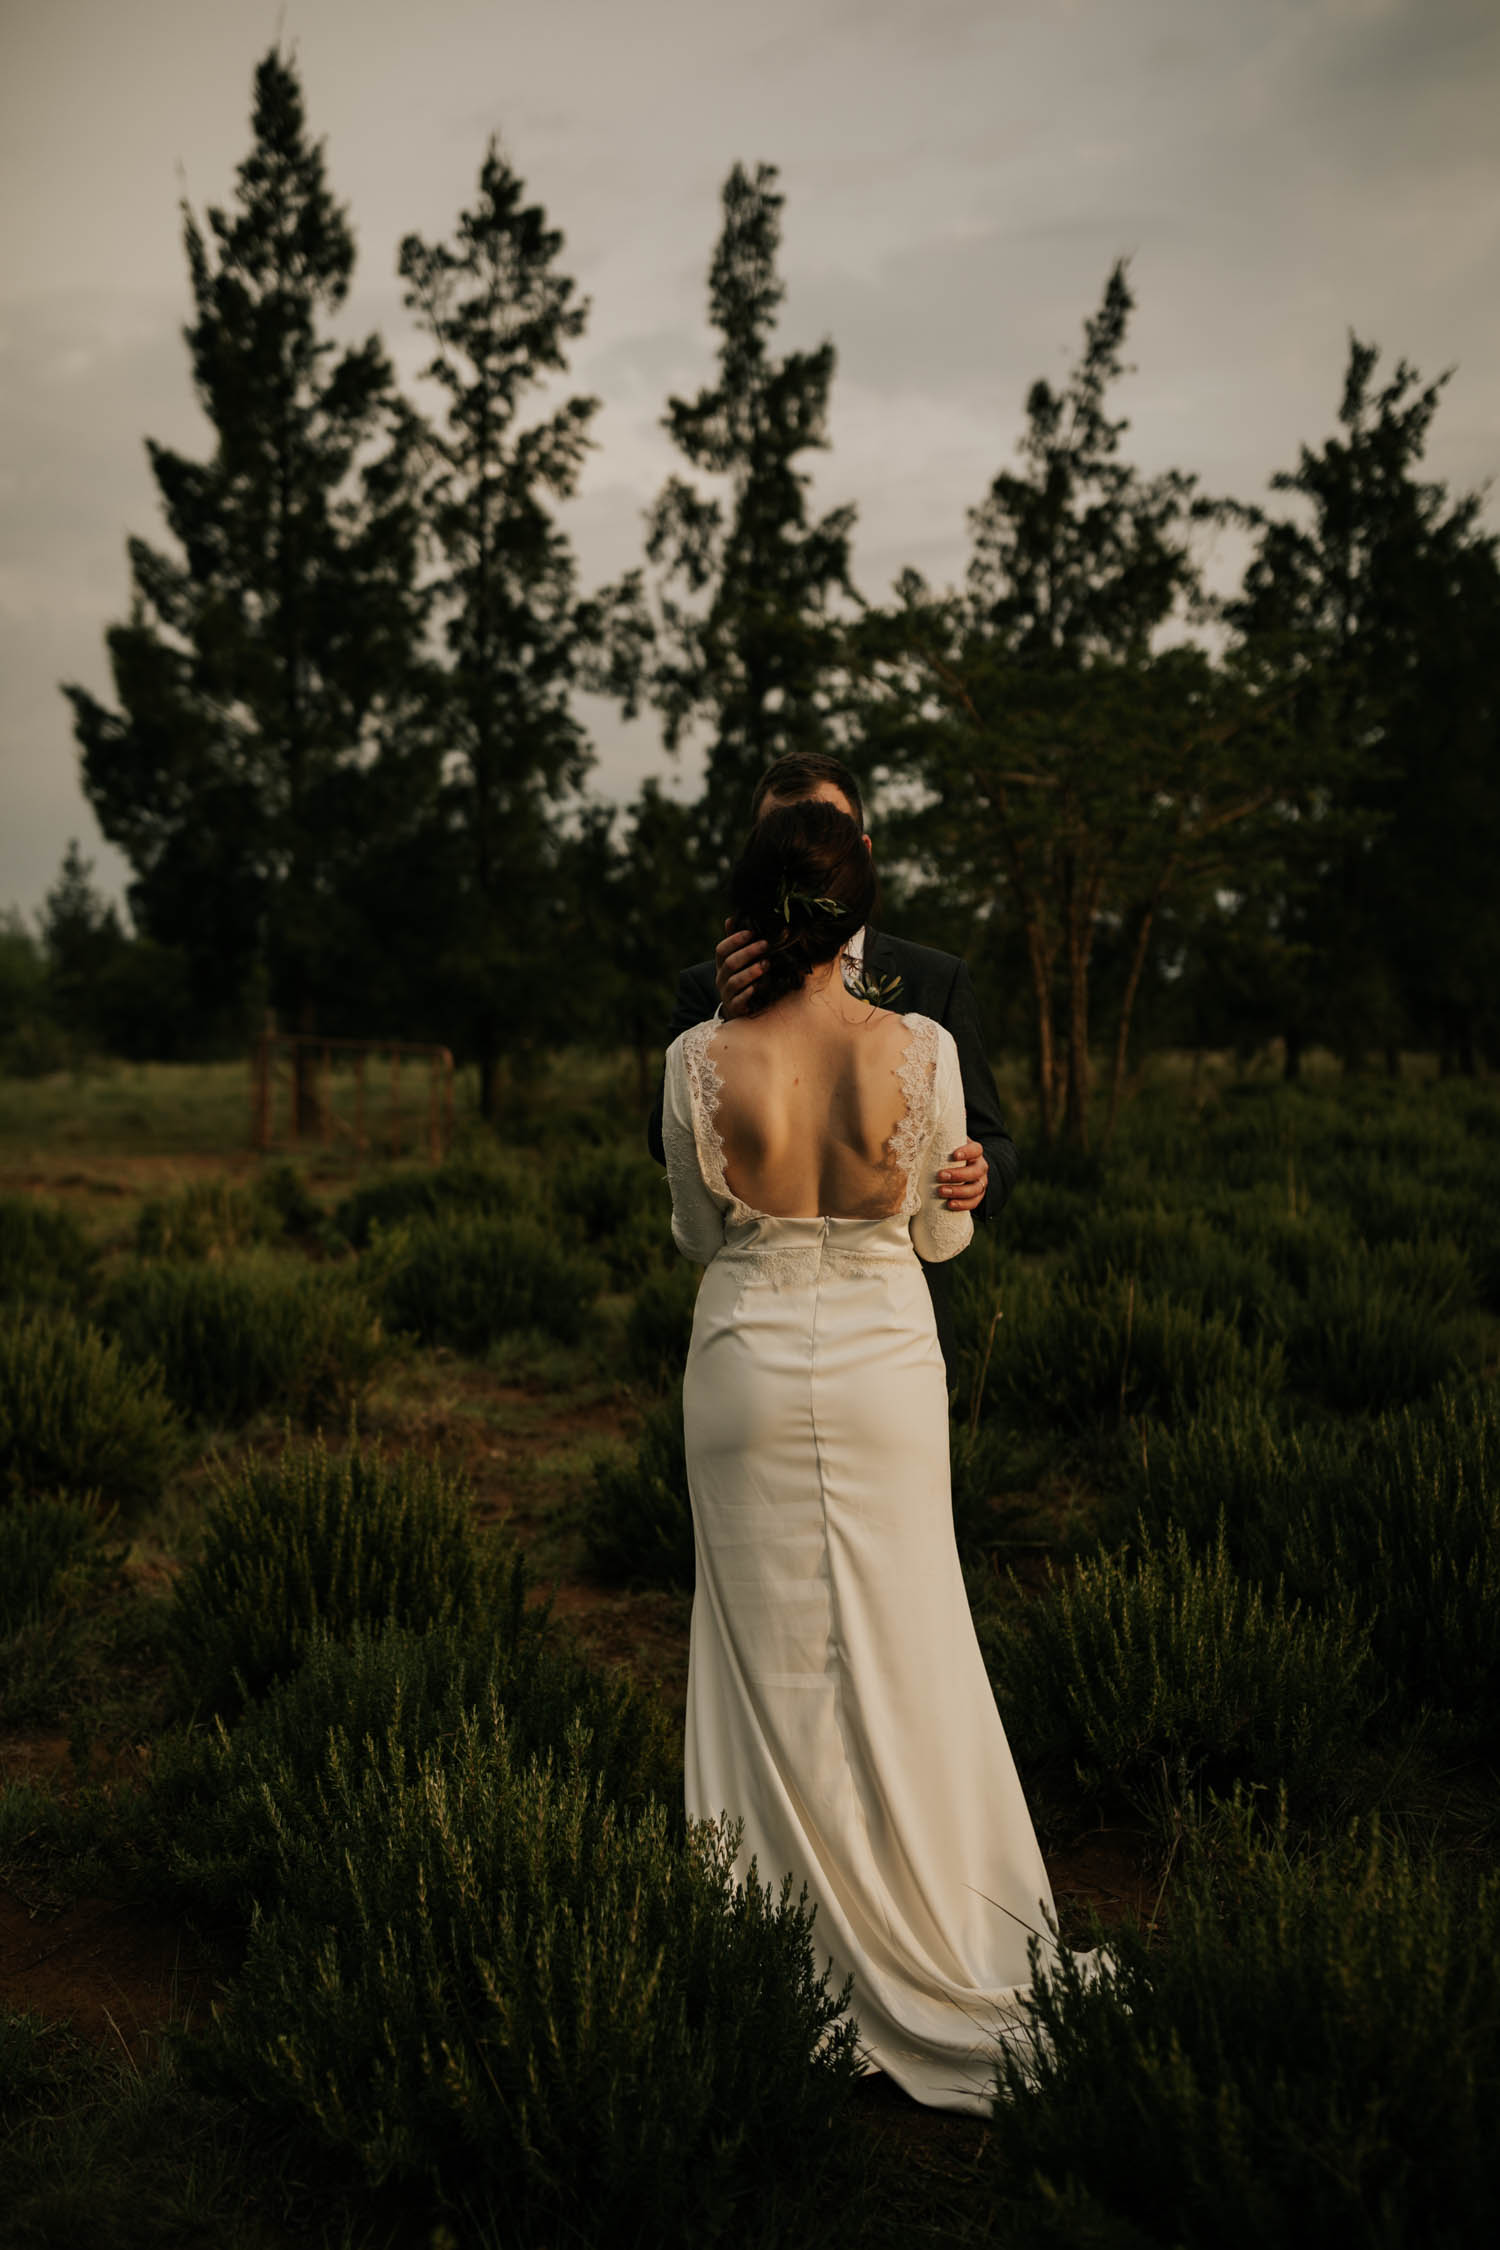 Non cheesy and Intimate moment of groom holding bride showing off her gorgeous open back lace wedding dress taken by Vancouver Wedding Photographer